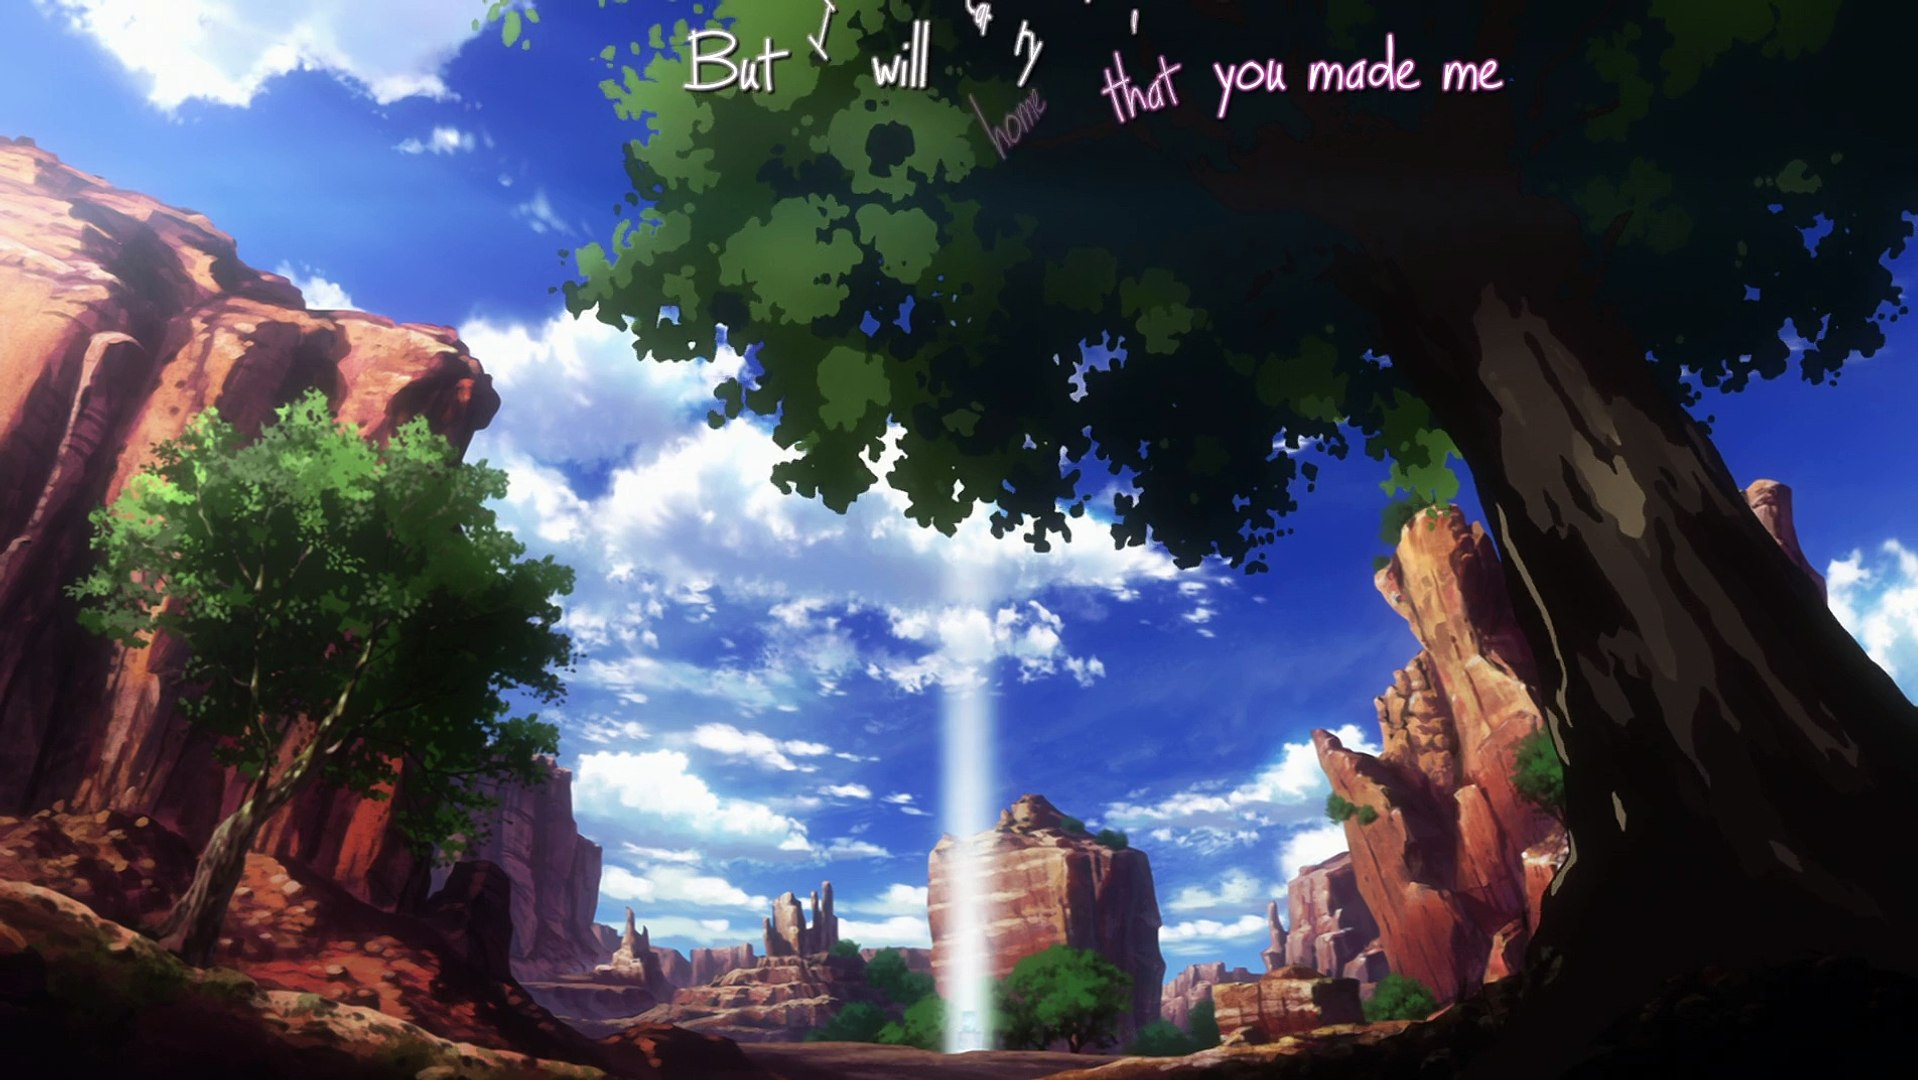 Shelter by Robinson et Madeon with Lyrics & VOSTFR (Blu-Ray)